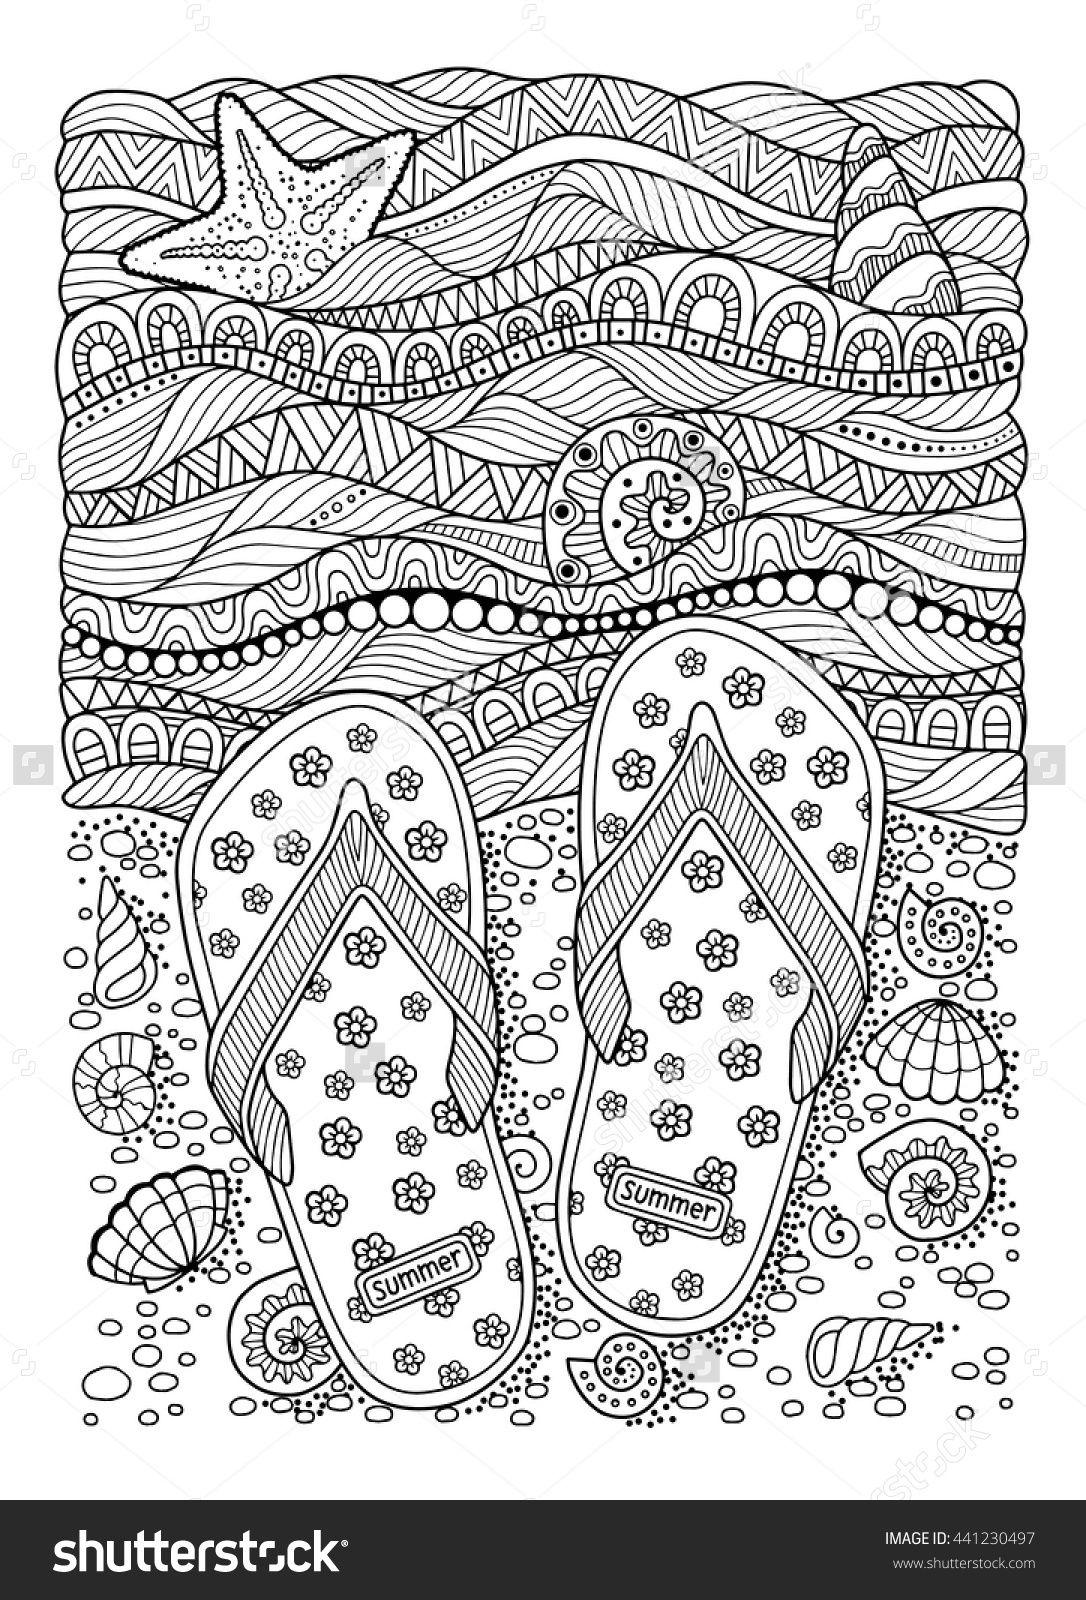 Coloring Book For Adult. Sea Beach. Slippers, Shells, Flip